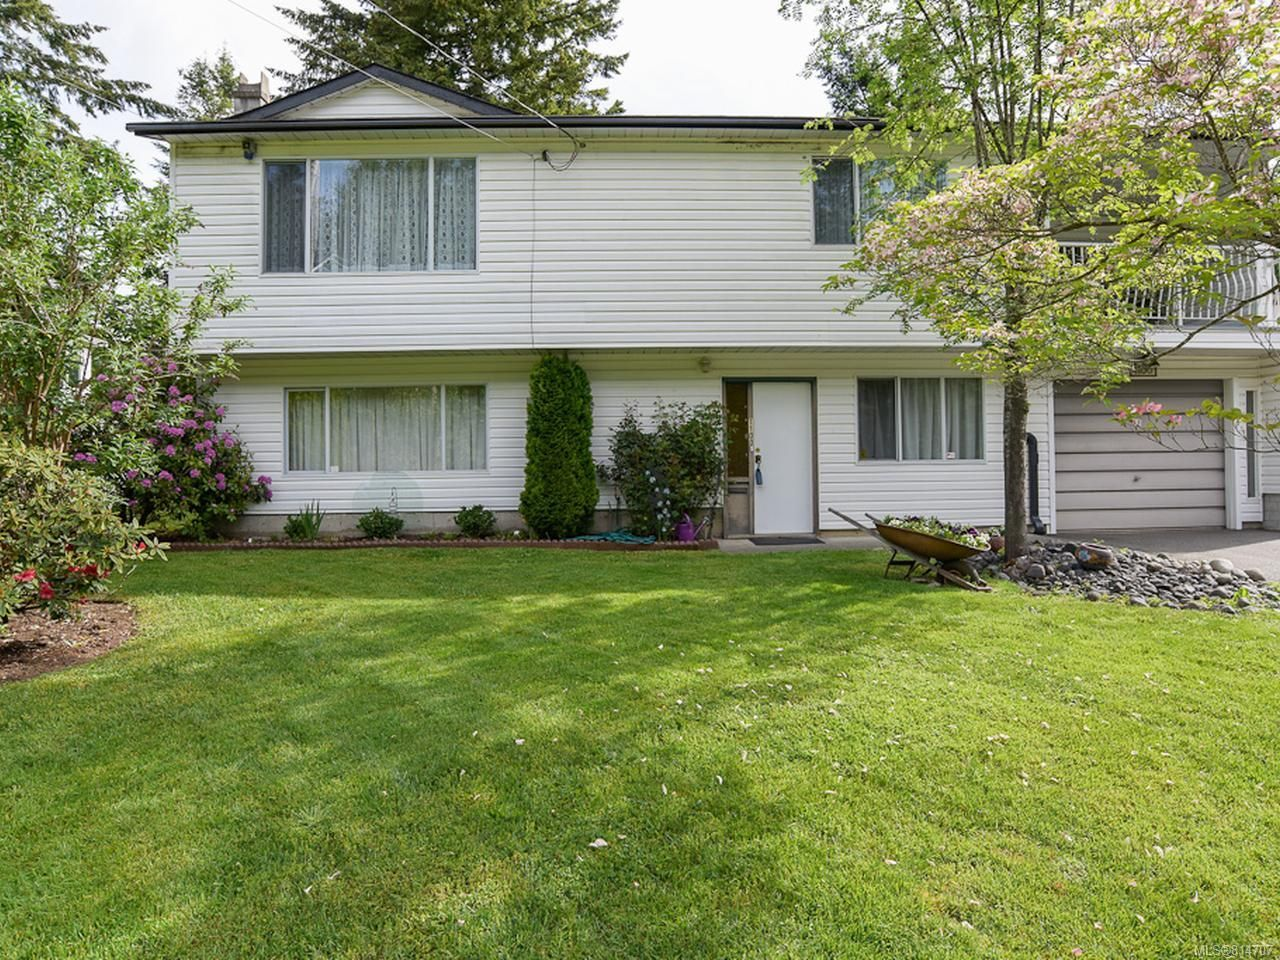 Main Photo: 1100 Hobson Ave in COURTENAY: CV Courtenay East House for sale (Comox Valley)  : MLS®# 814707